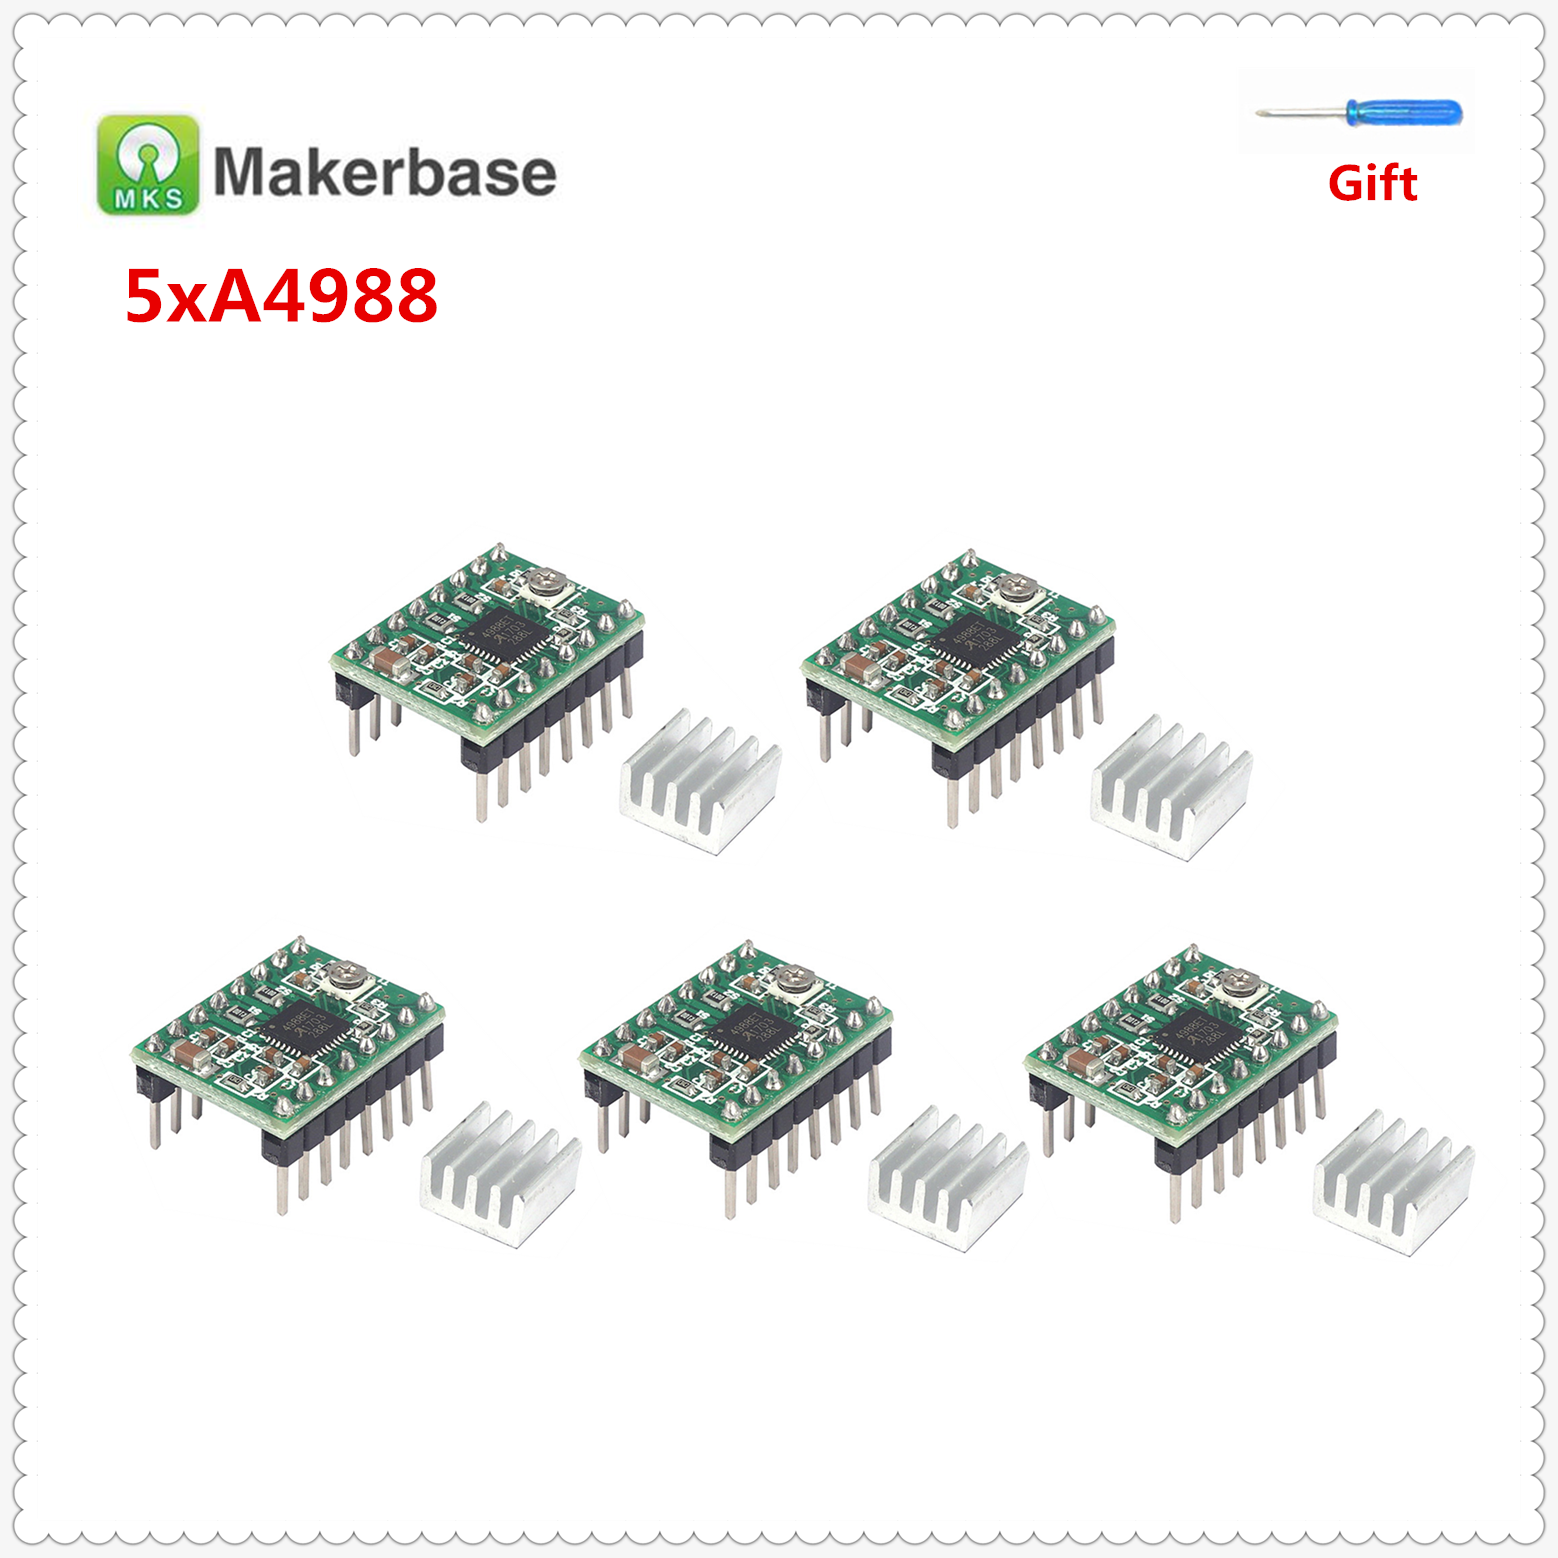 5pcs Pololu A4988 Driver Step Stick Electronics 3D Printer Parts Reprap Stepper Motor Driver With Heatsink Allegro 4988